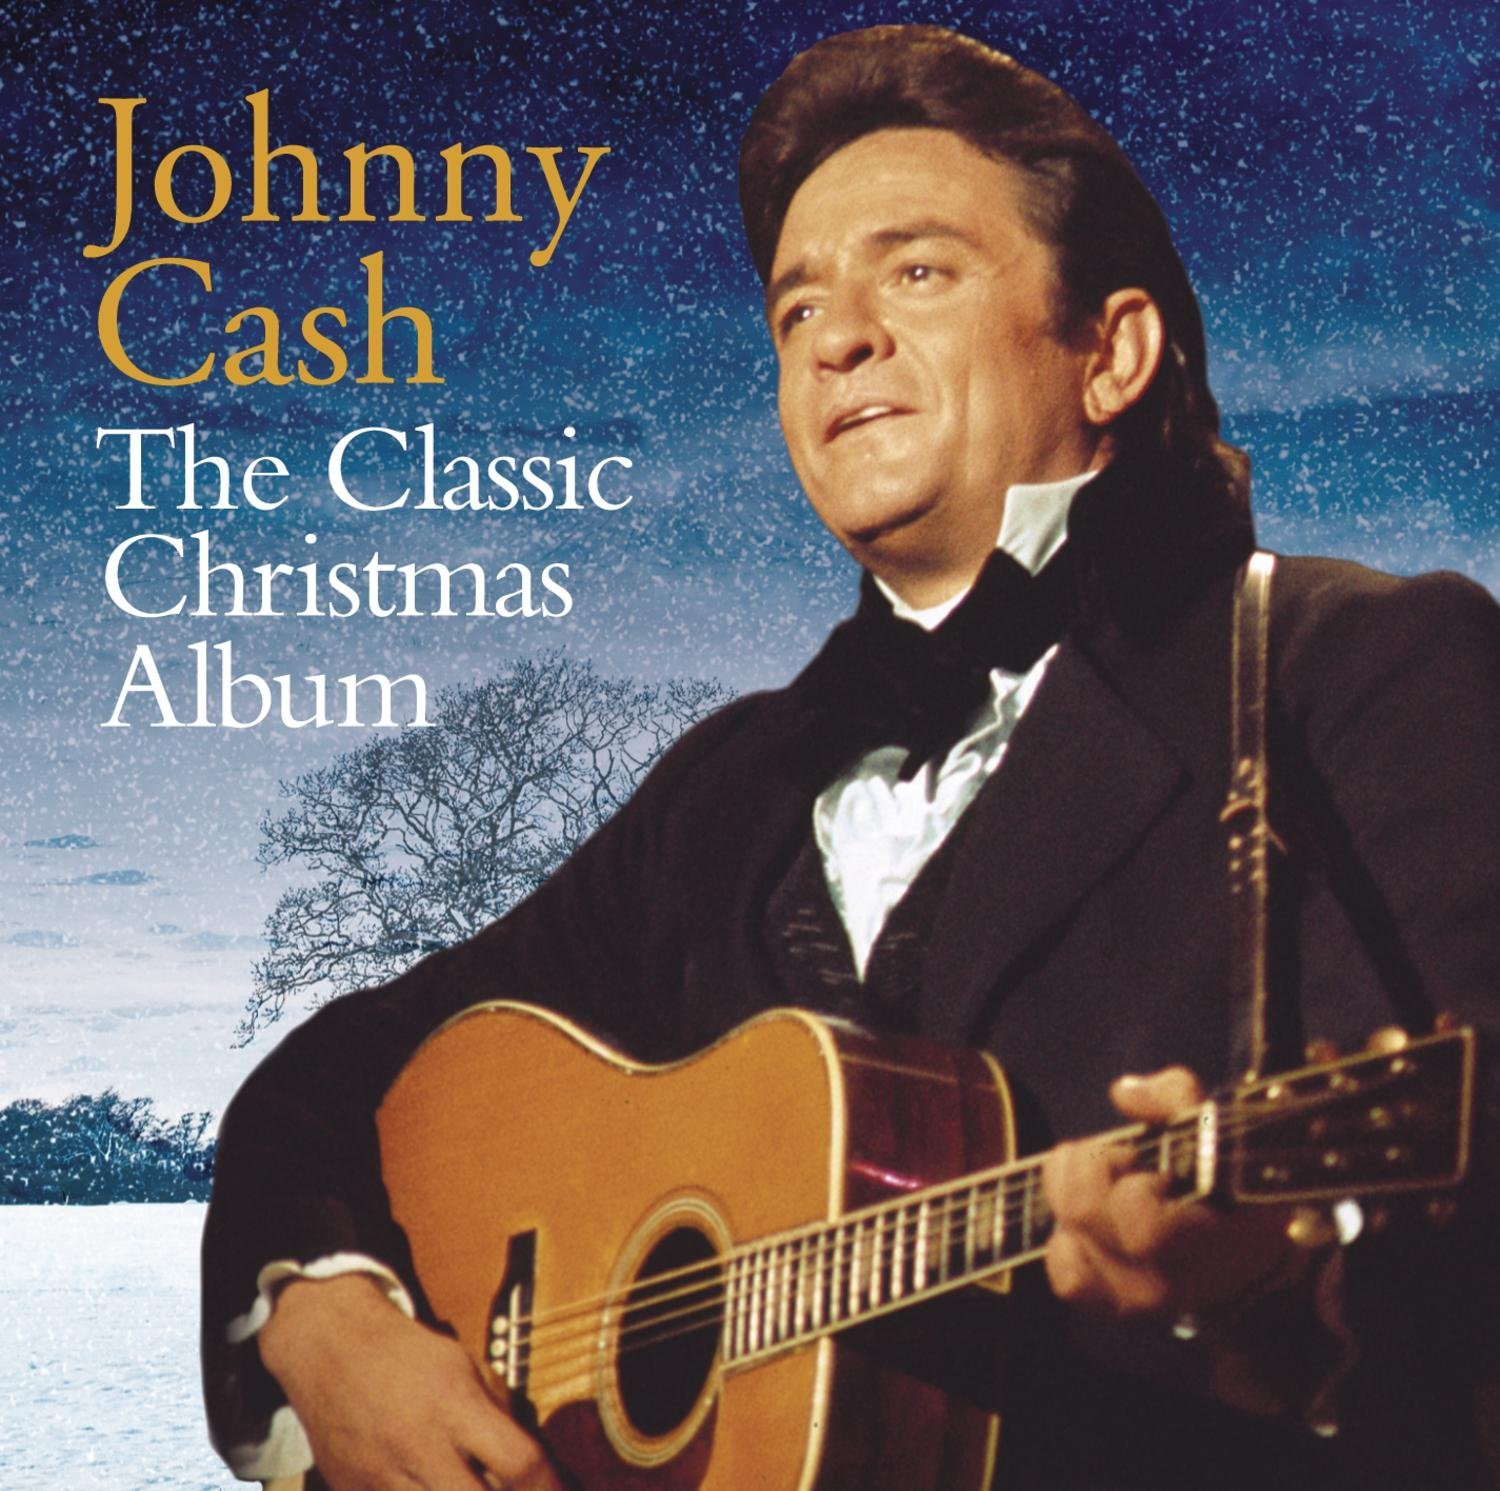 JOHNNY CASH - THE CLASSIC CHRISTMAS ALBUM (CD)